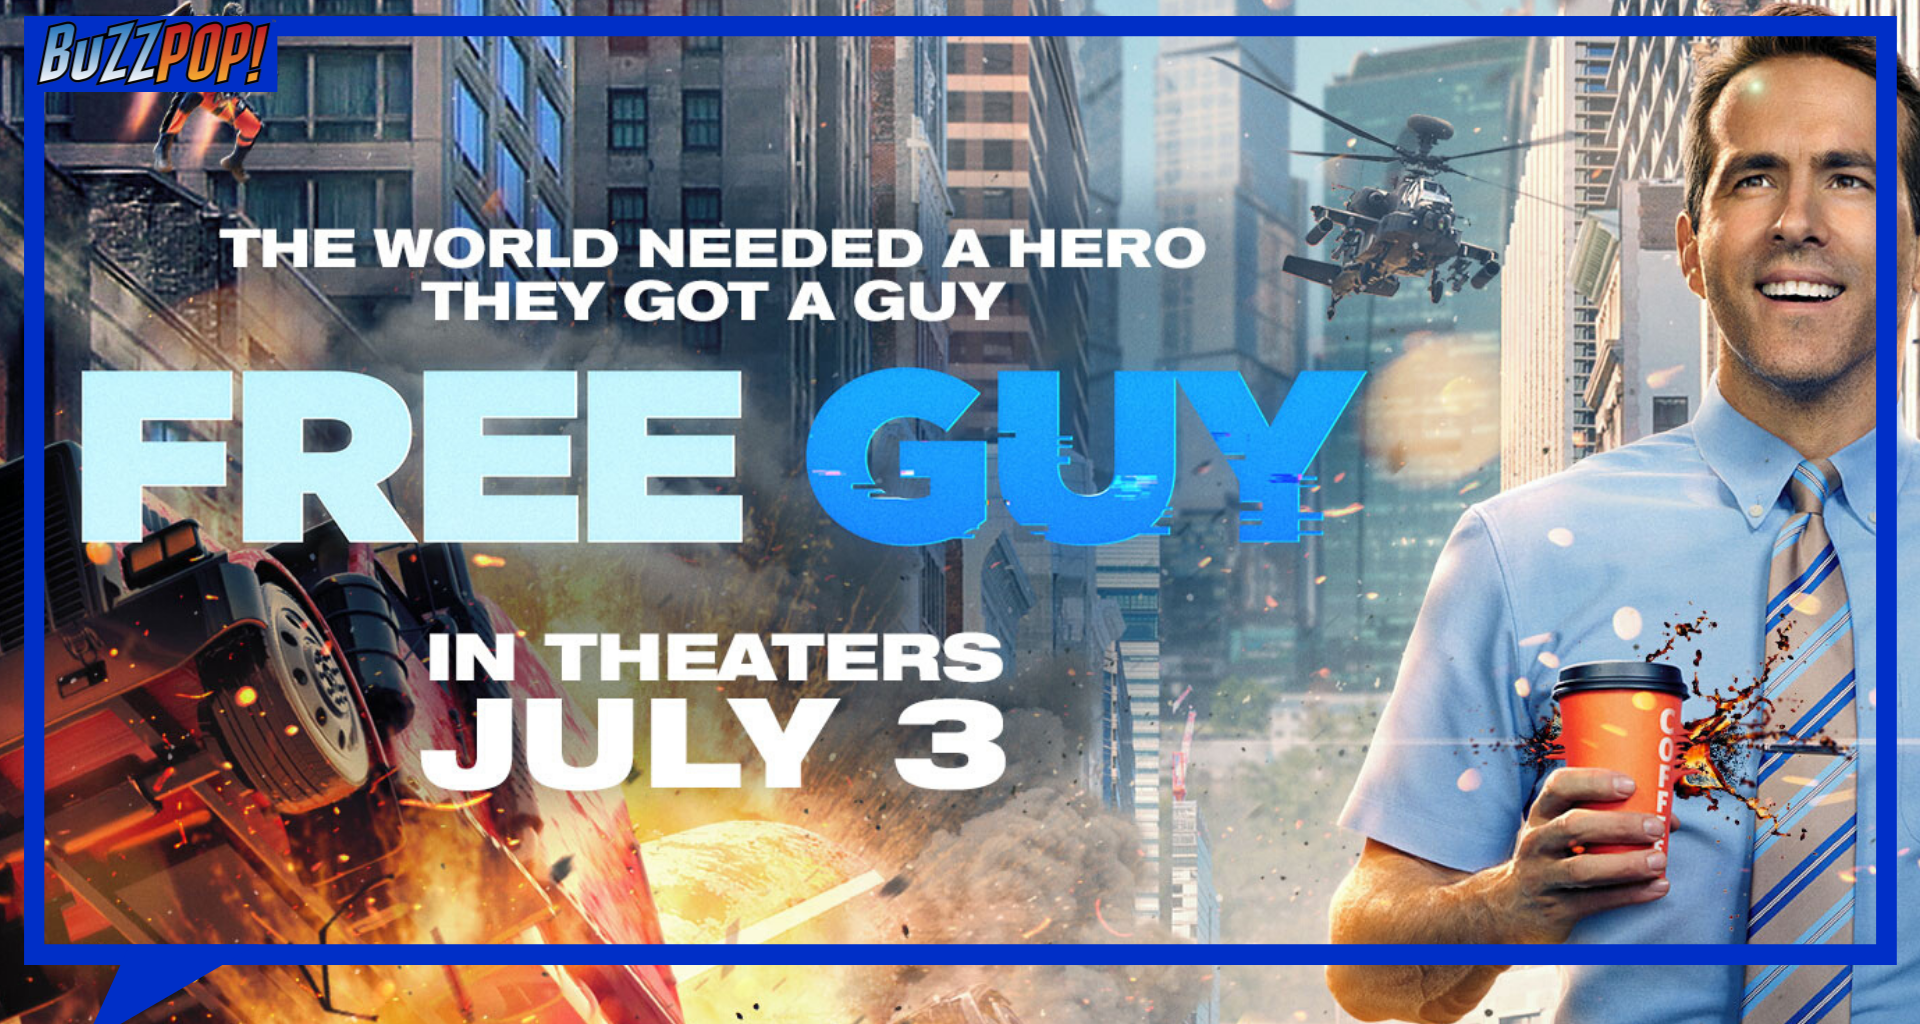 Banner Poster FREE GUY